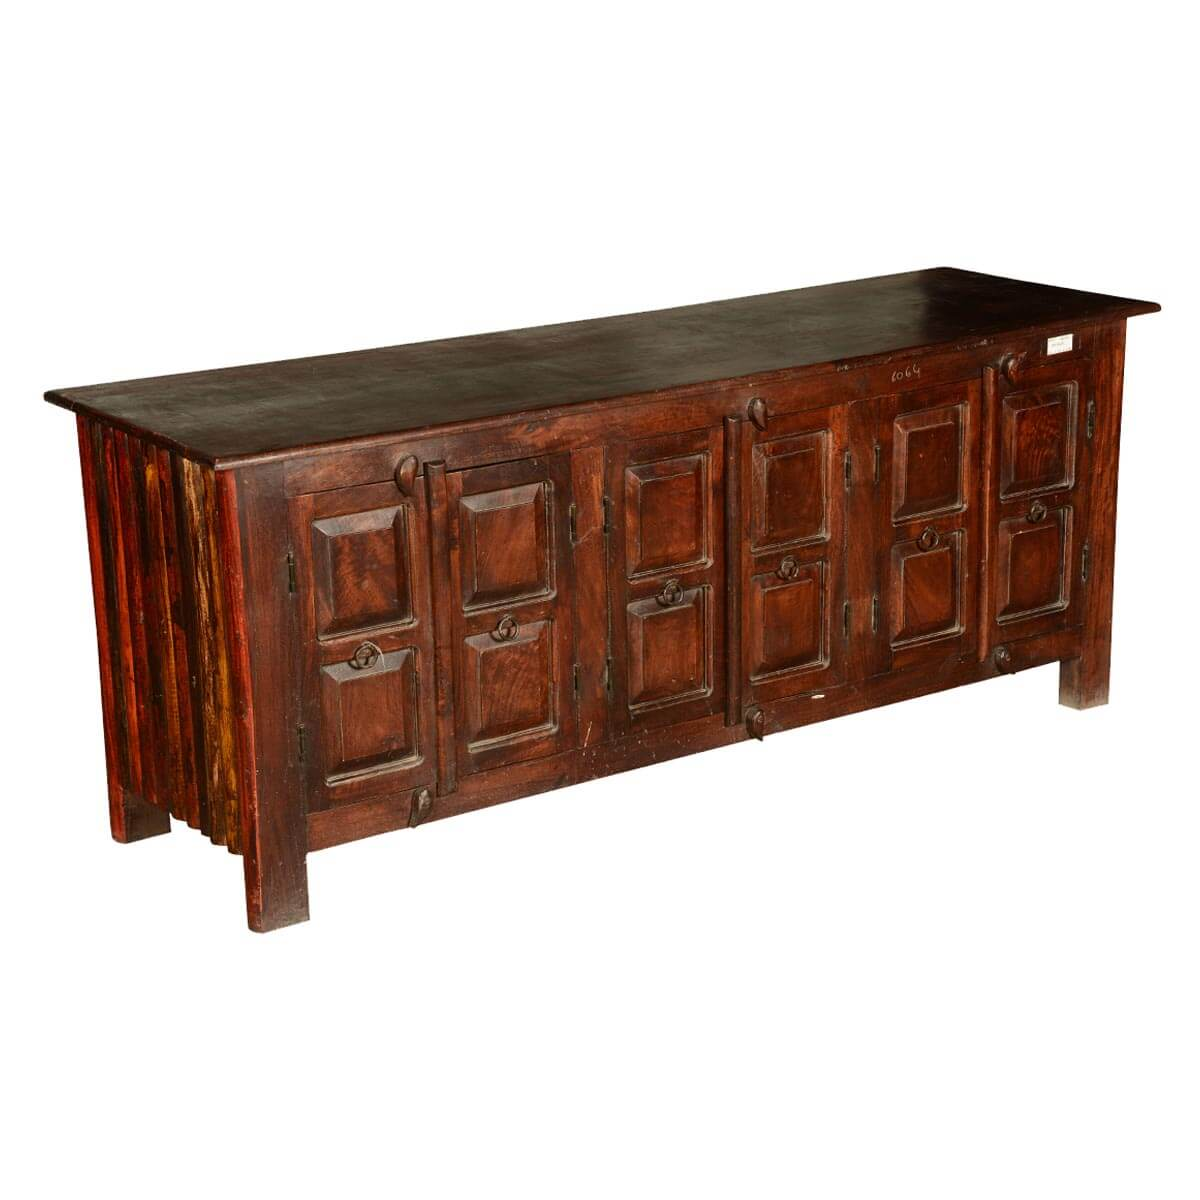 Shaker Rustic Reclaimed Wood 64 TV Stand Media Console